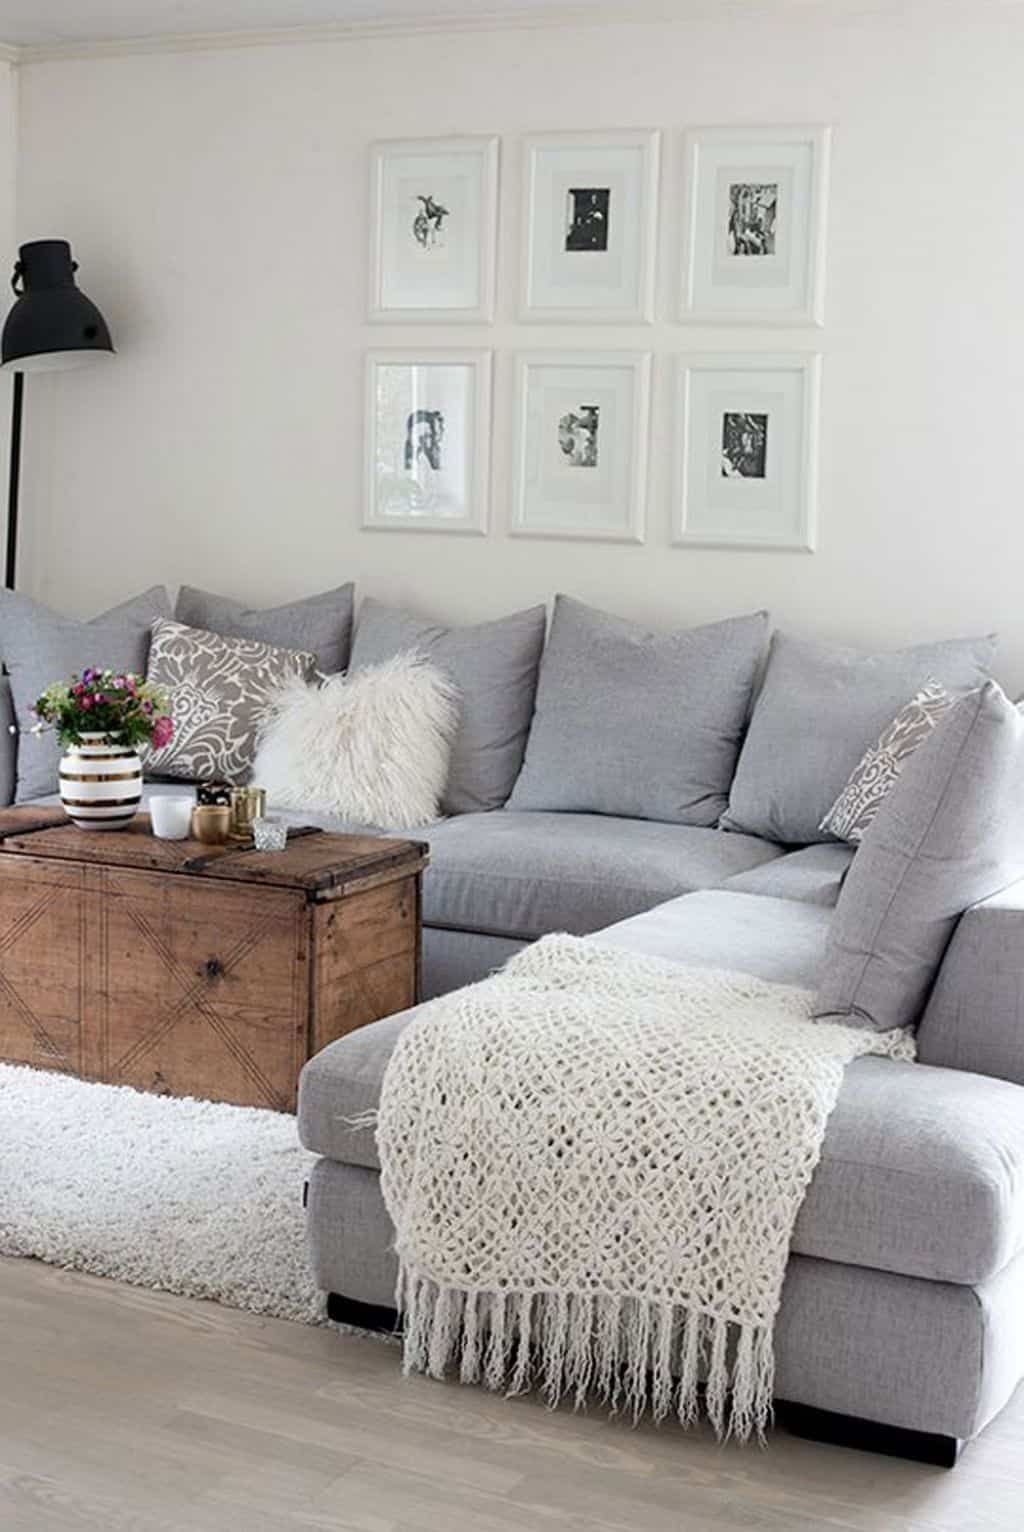 Living Room With Grey Sectional Sofa And Wooden Coffee Table